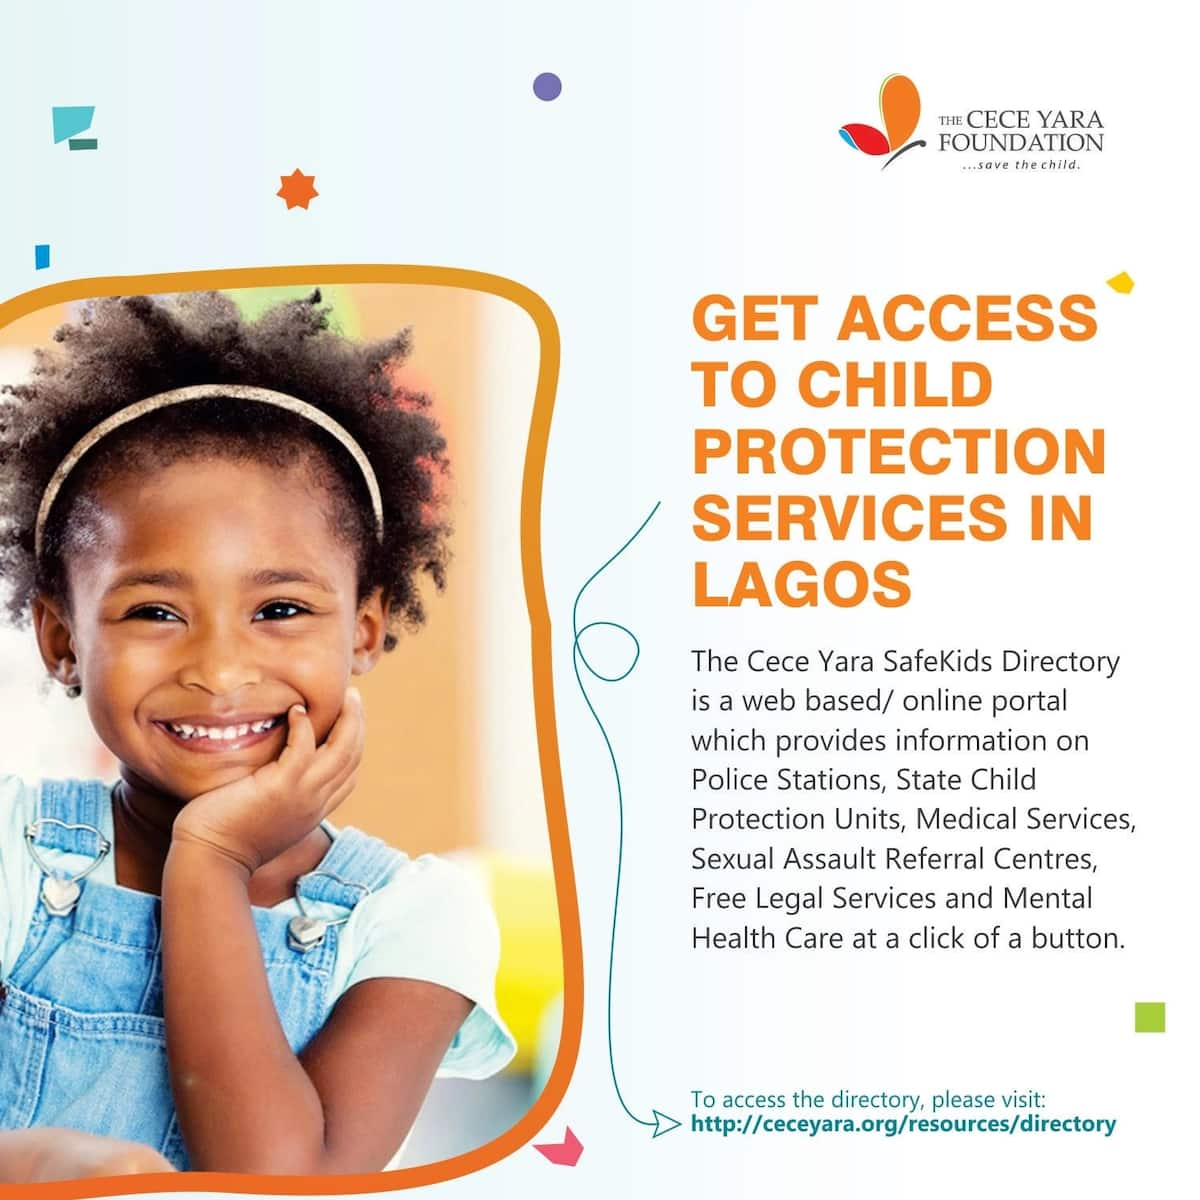 The Cece Yara Foundation launches groundbreaking child protection online directory